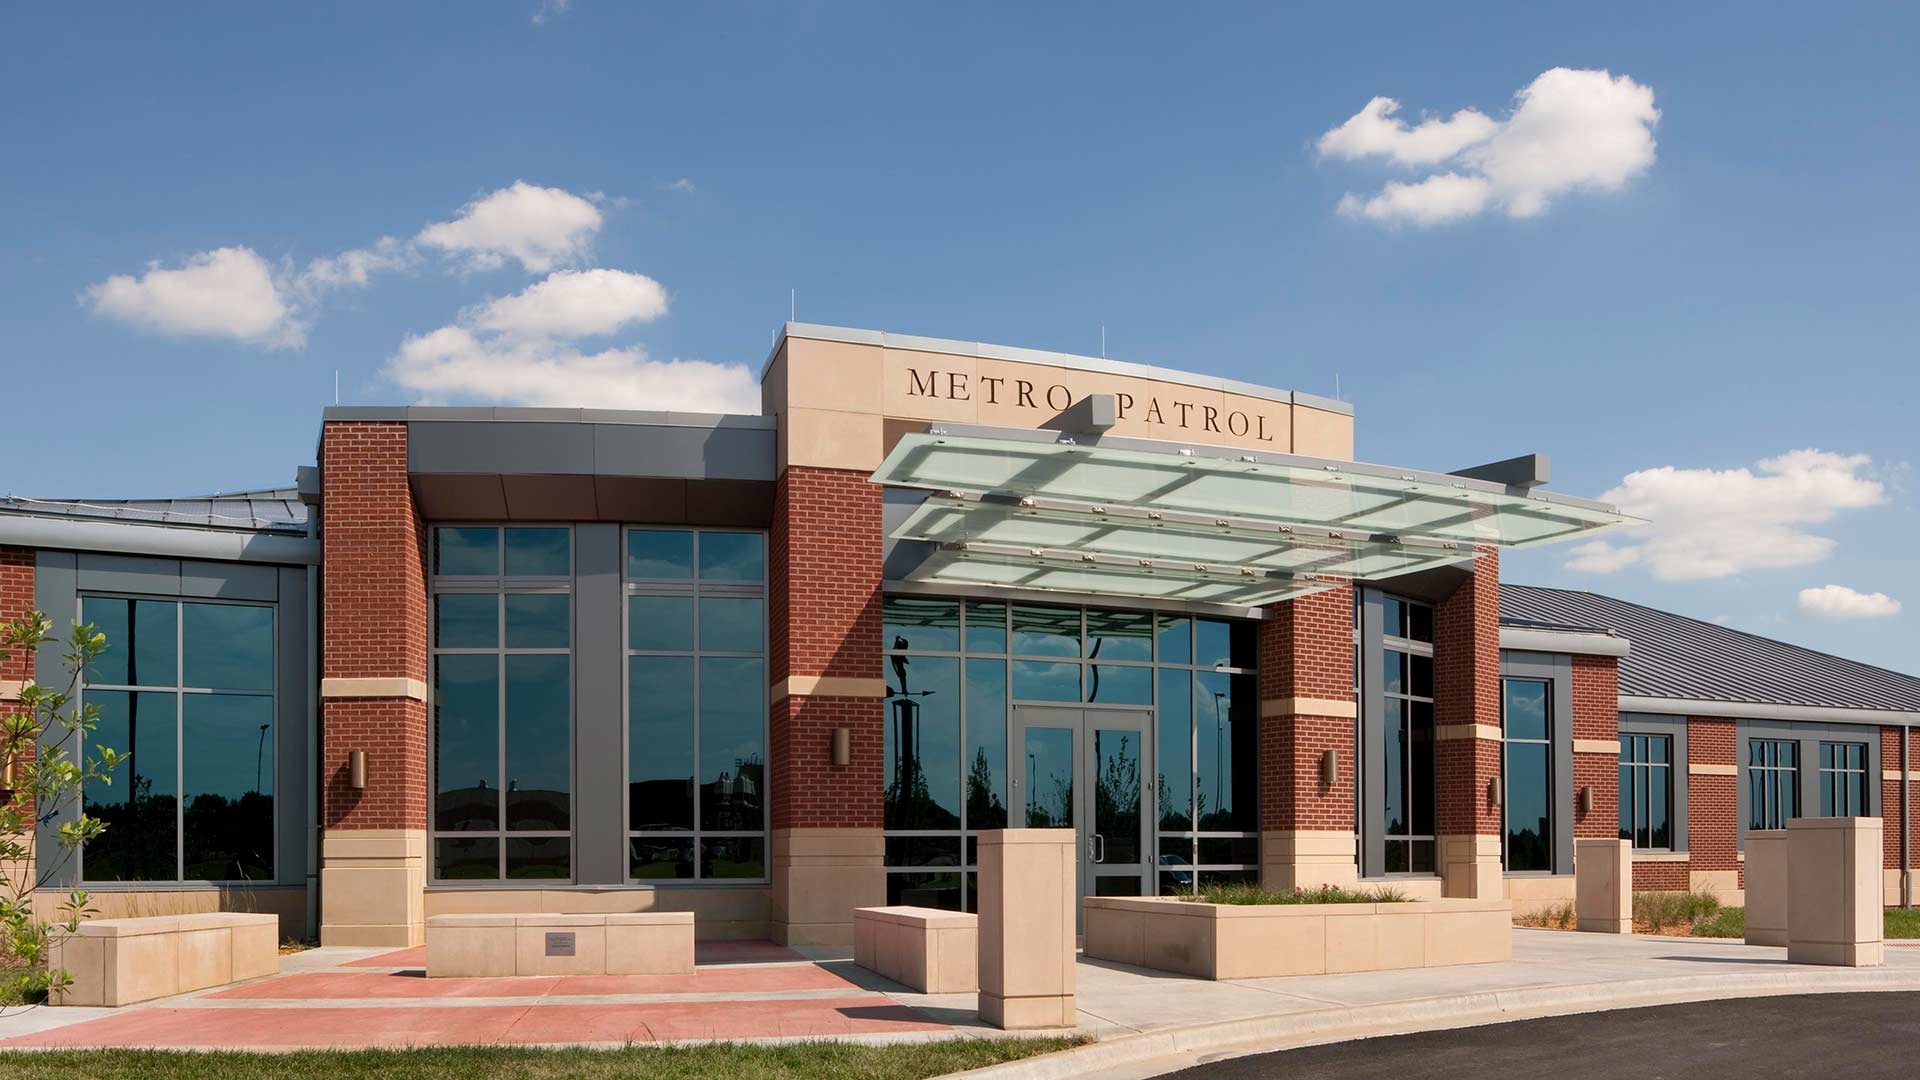 KCMO Police Metro Patrol Station Front